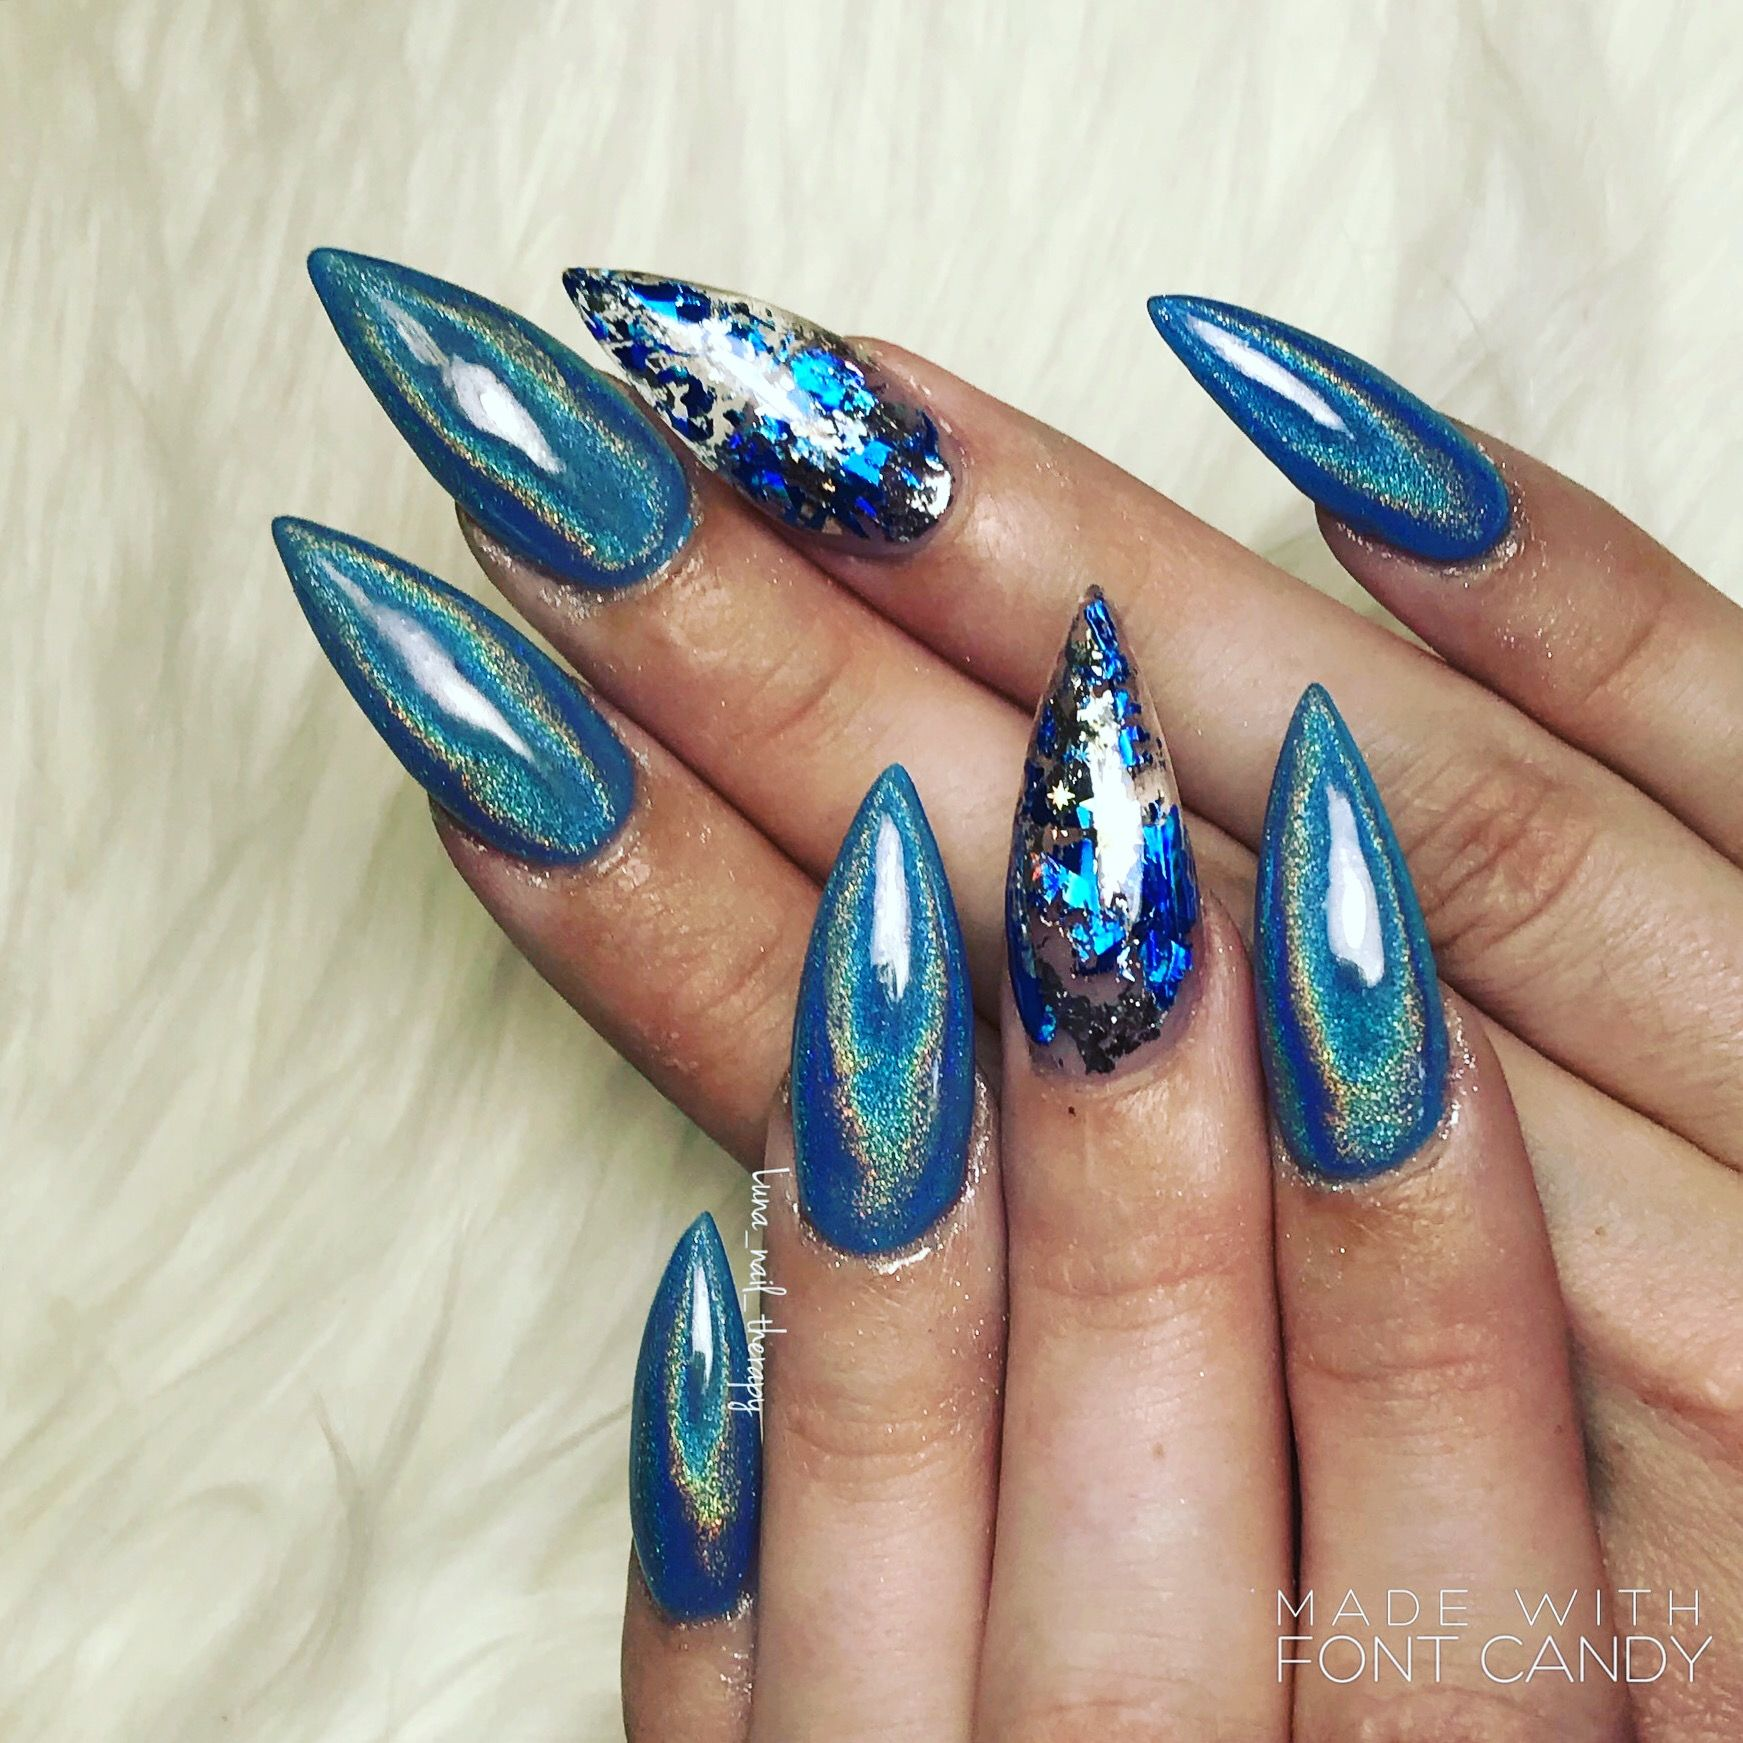 Pin de Leanne Gough en nails | Pinterest | Uña decoradas, La uña y ...